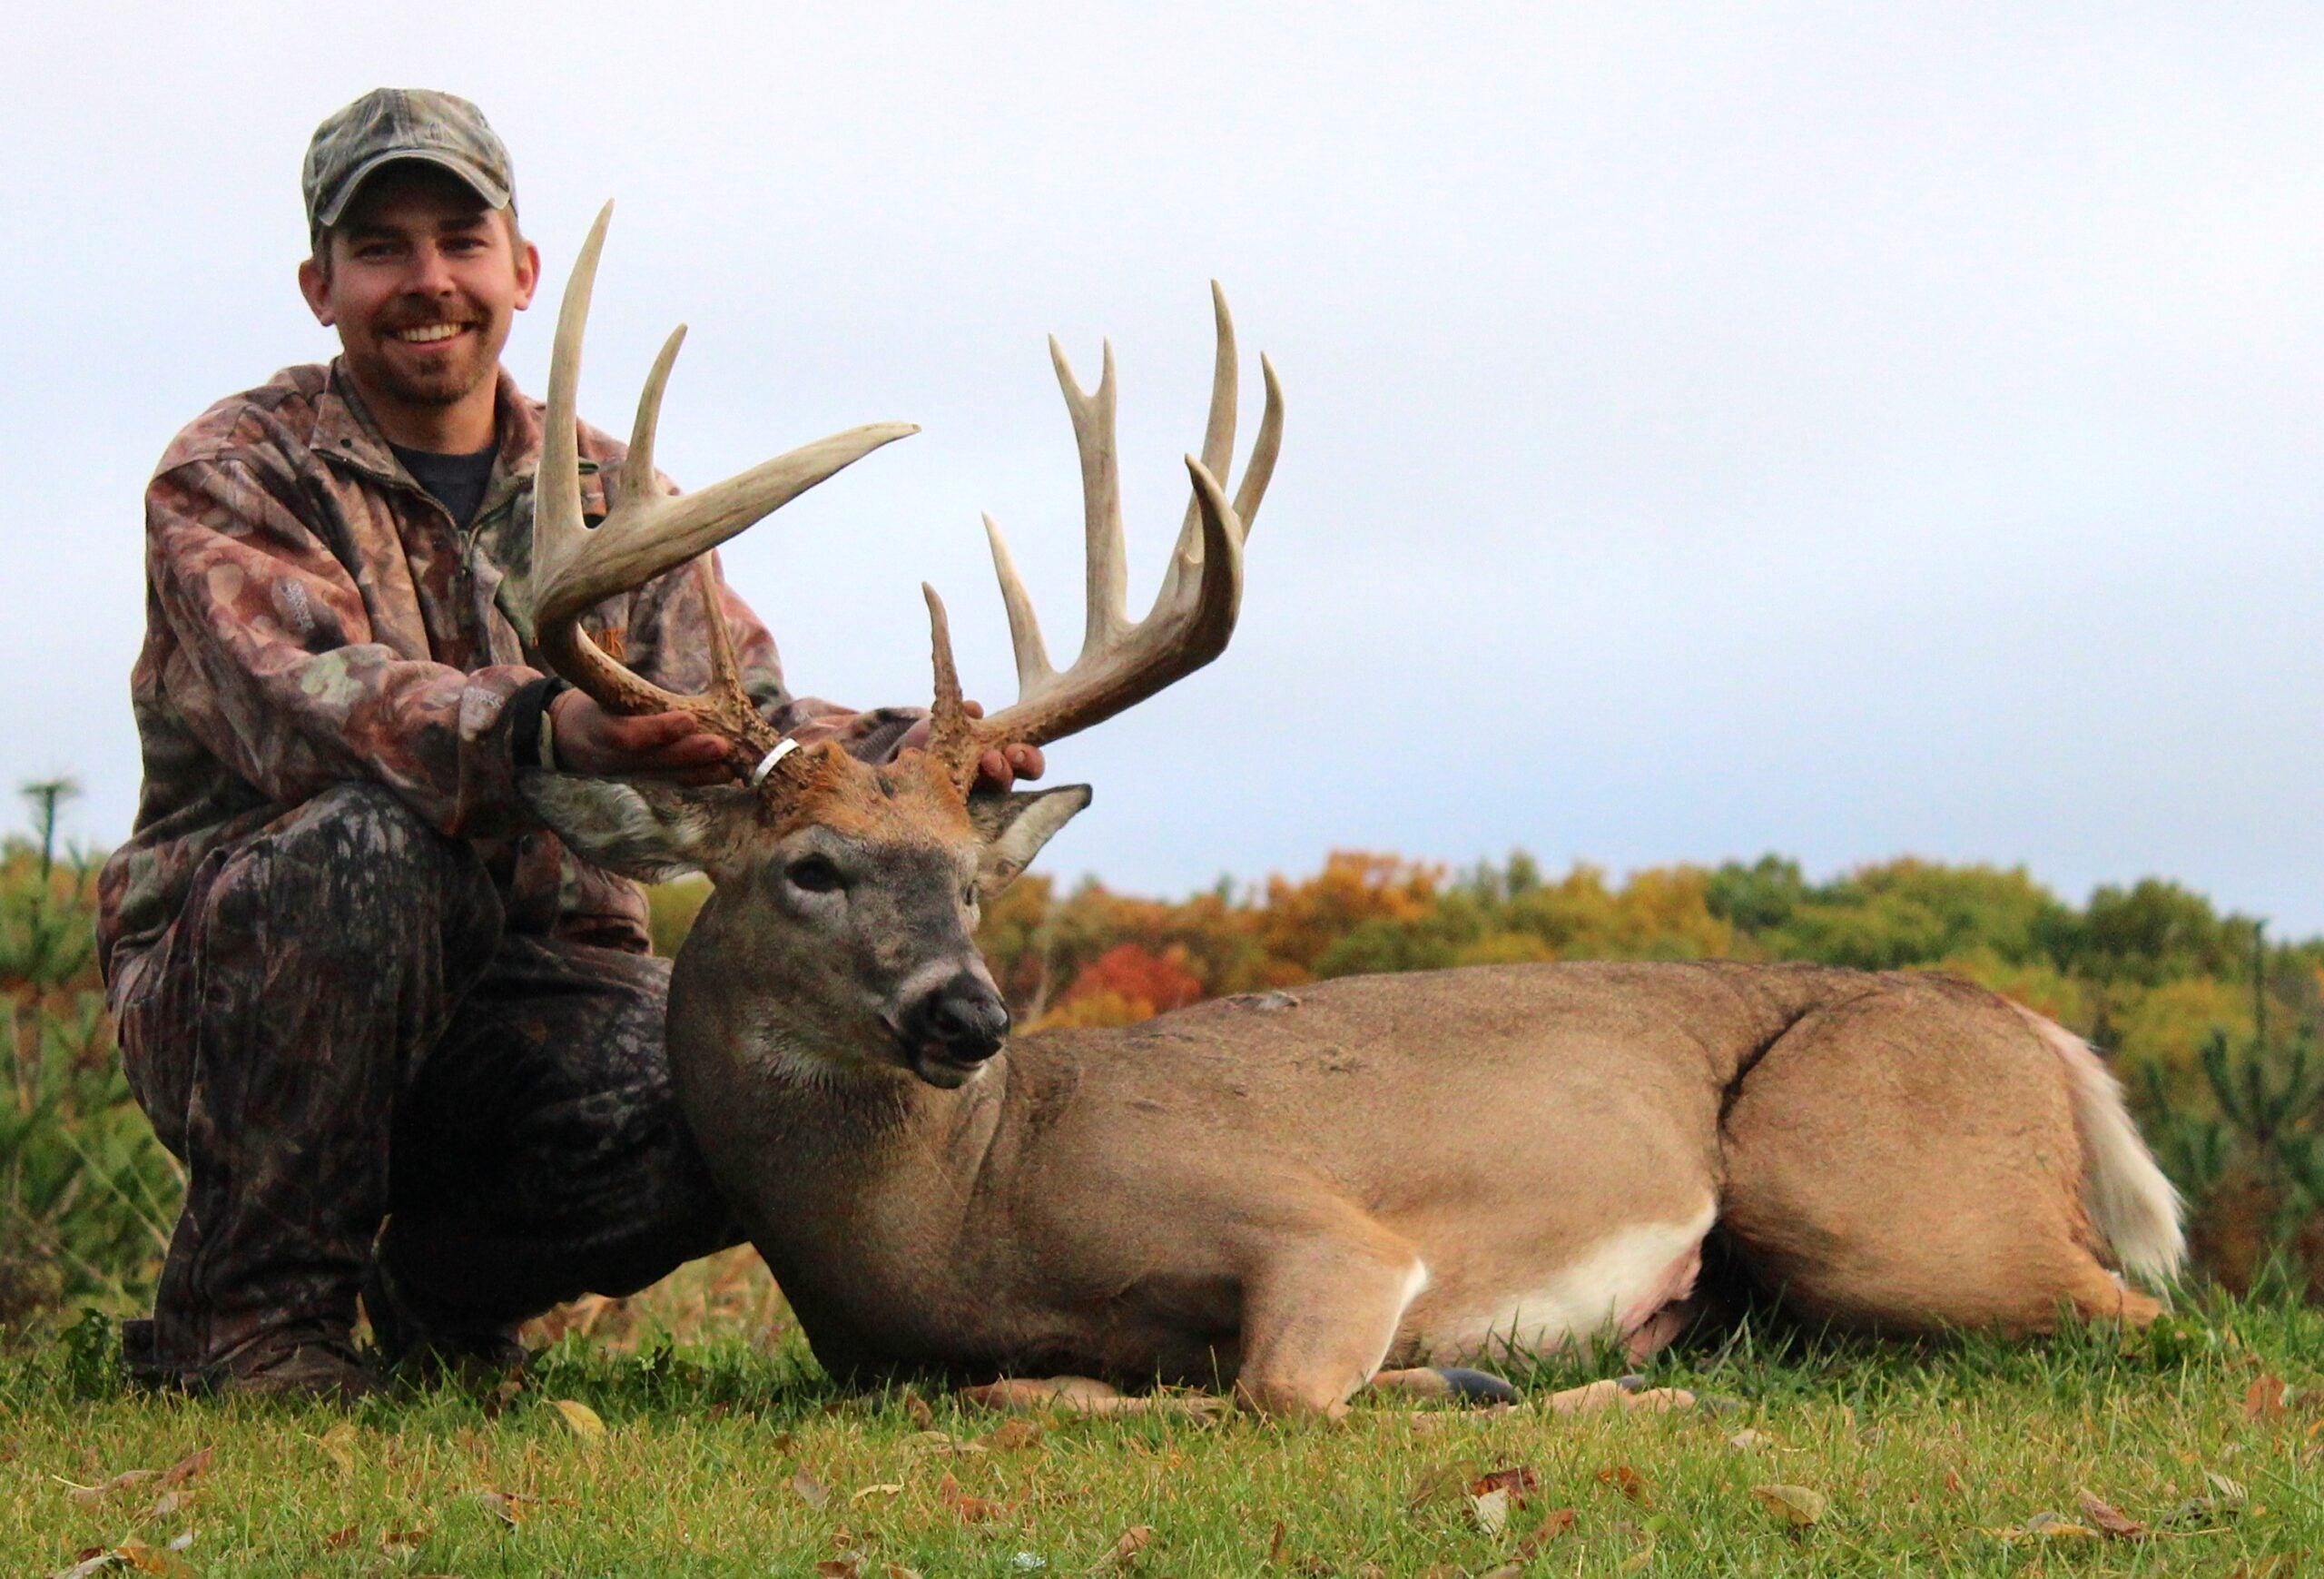 Big Bucks: Wisconsin Whitetail Confirmed as New State Archery Record